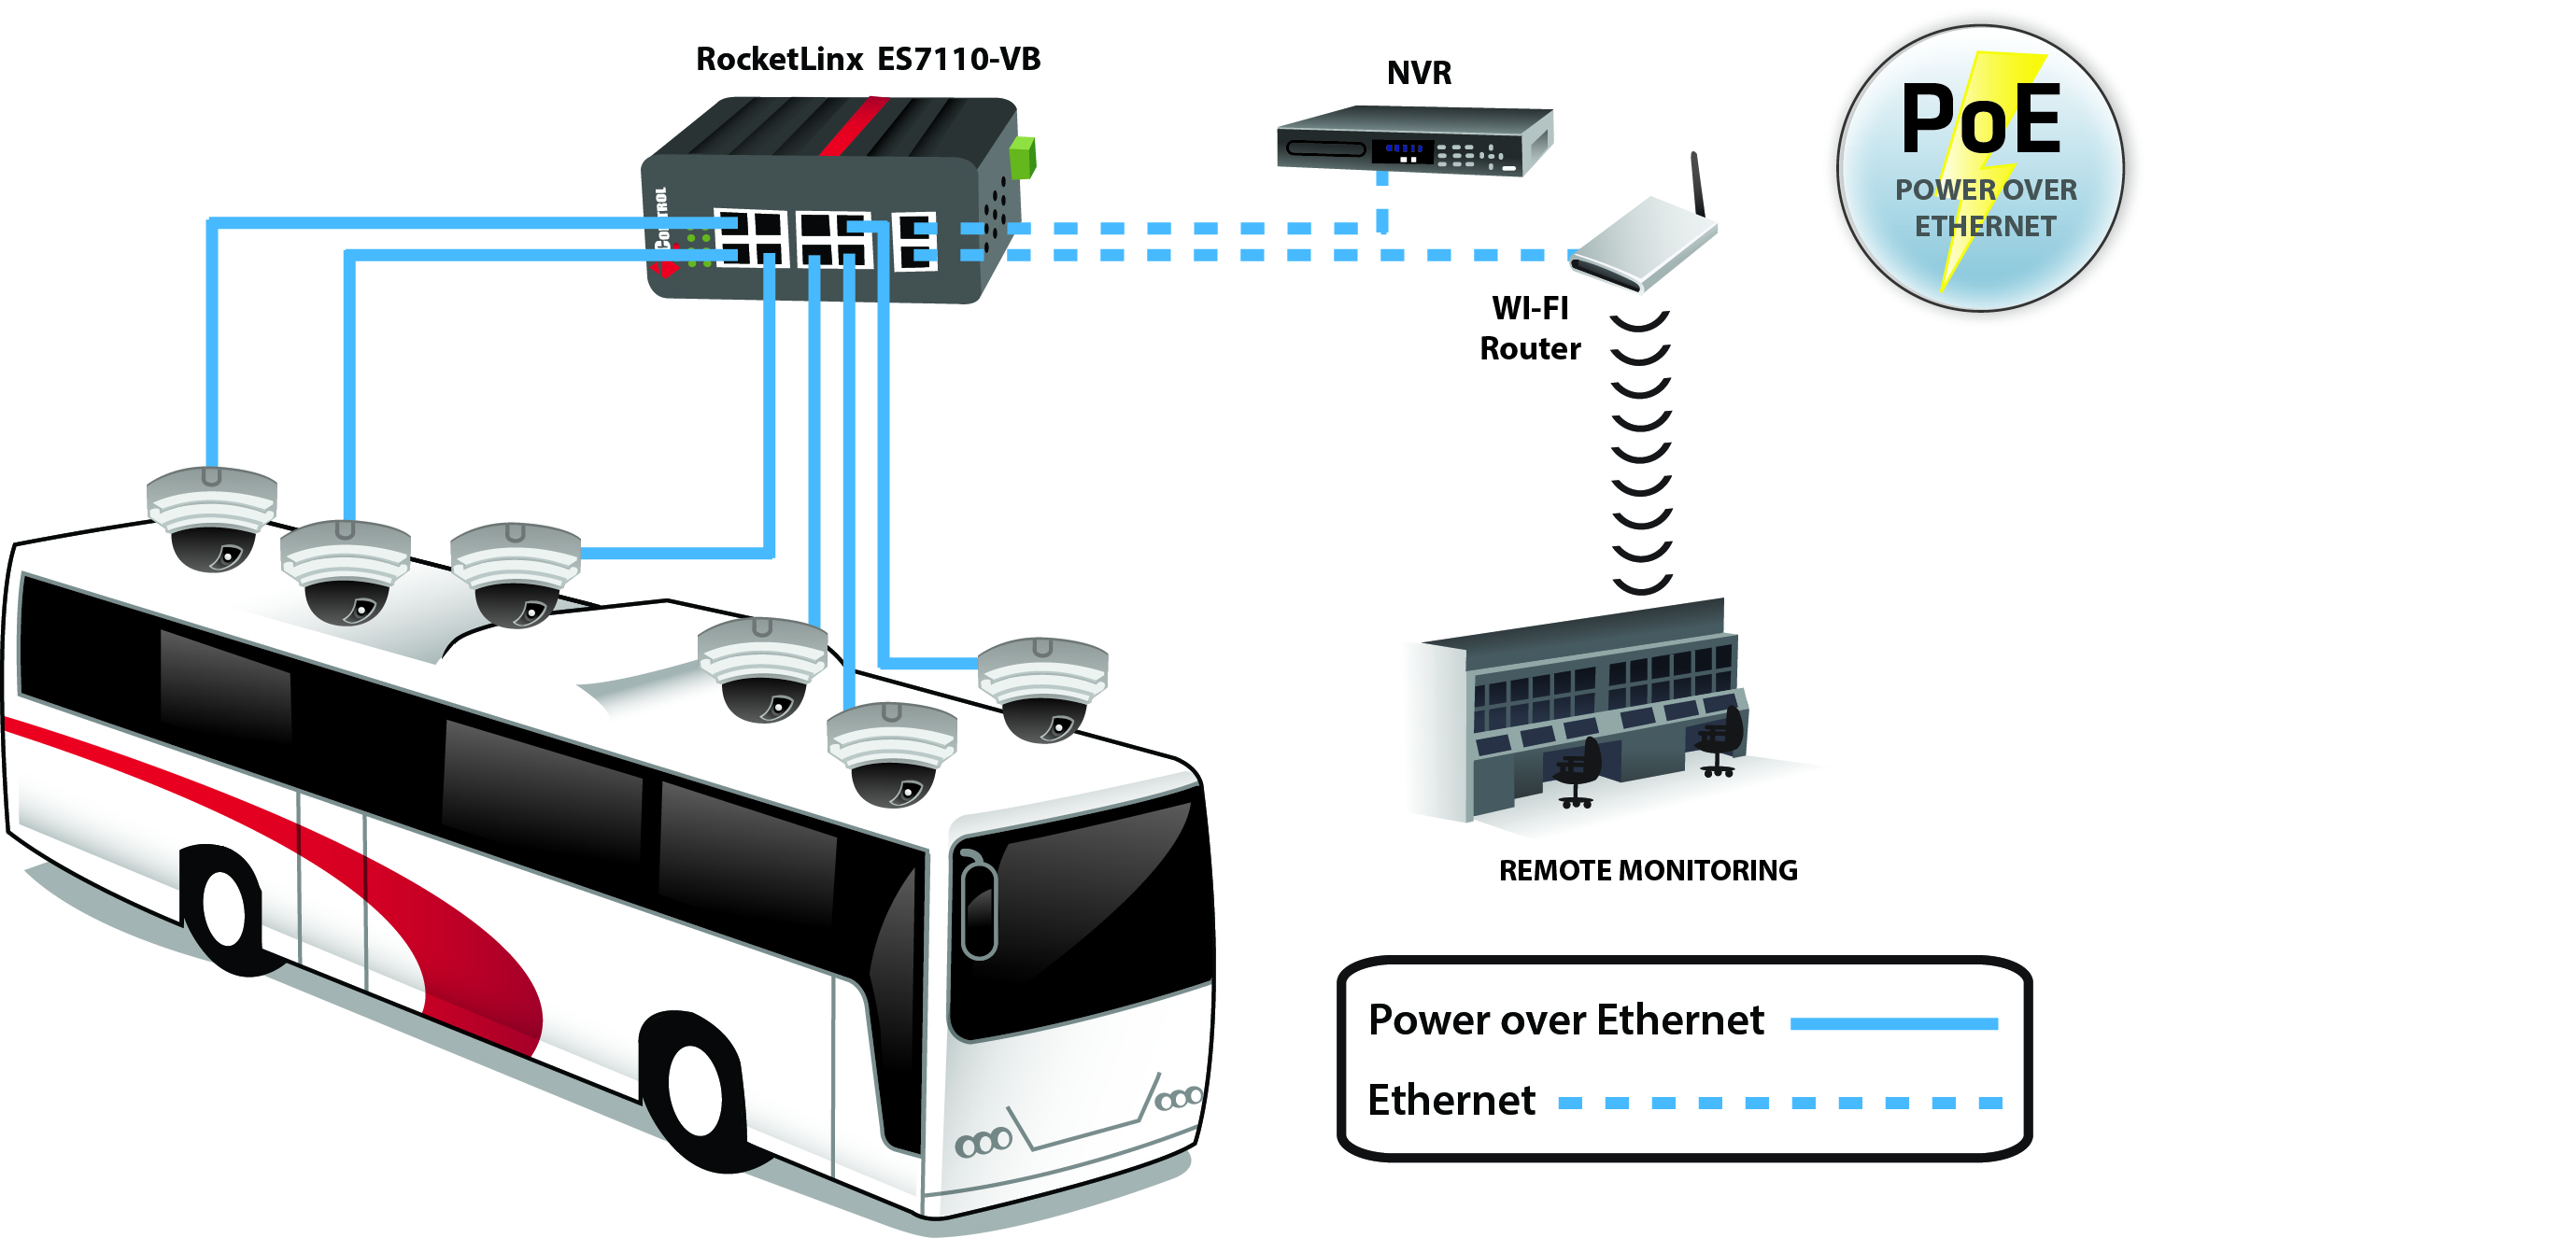 power over ethernet mobile security RocketLinx voltage boost